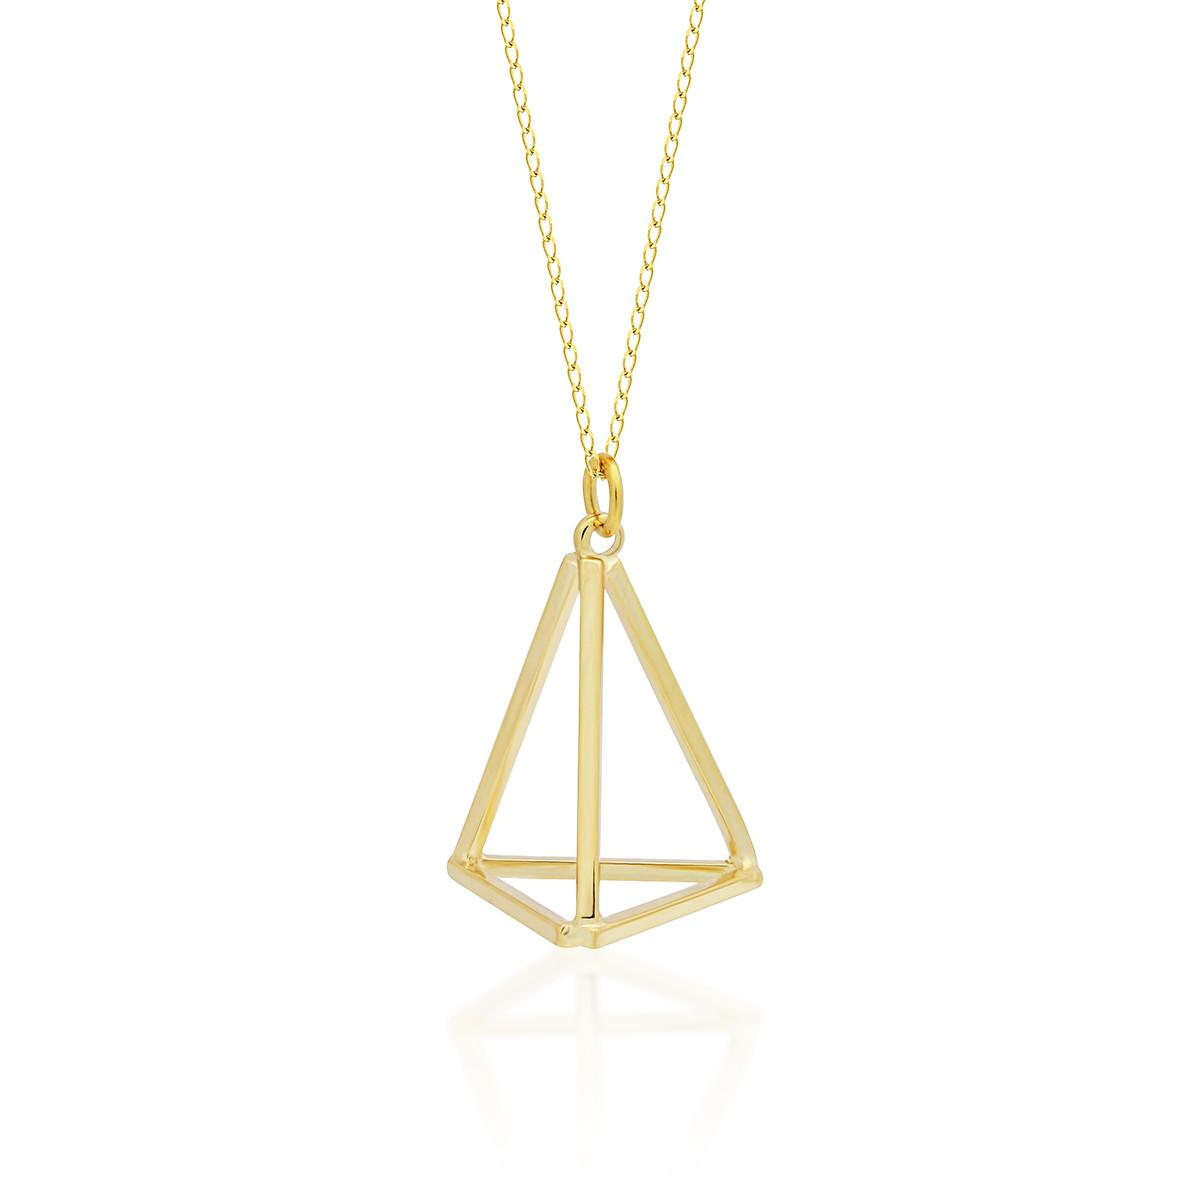 Tzaro Jewelry Gold Triangle Necklace 14k Fill